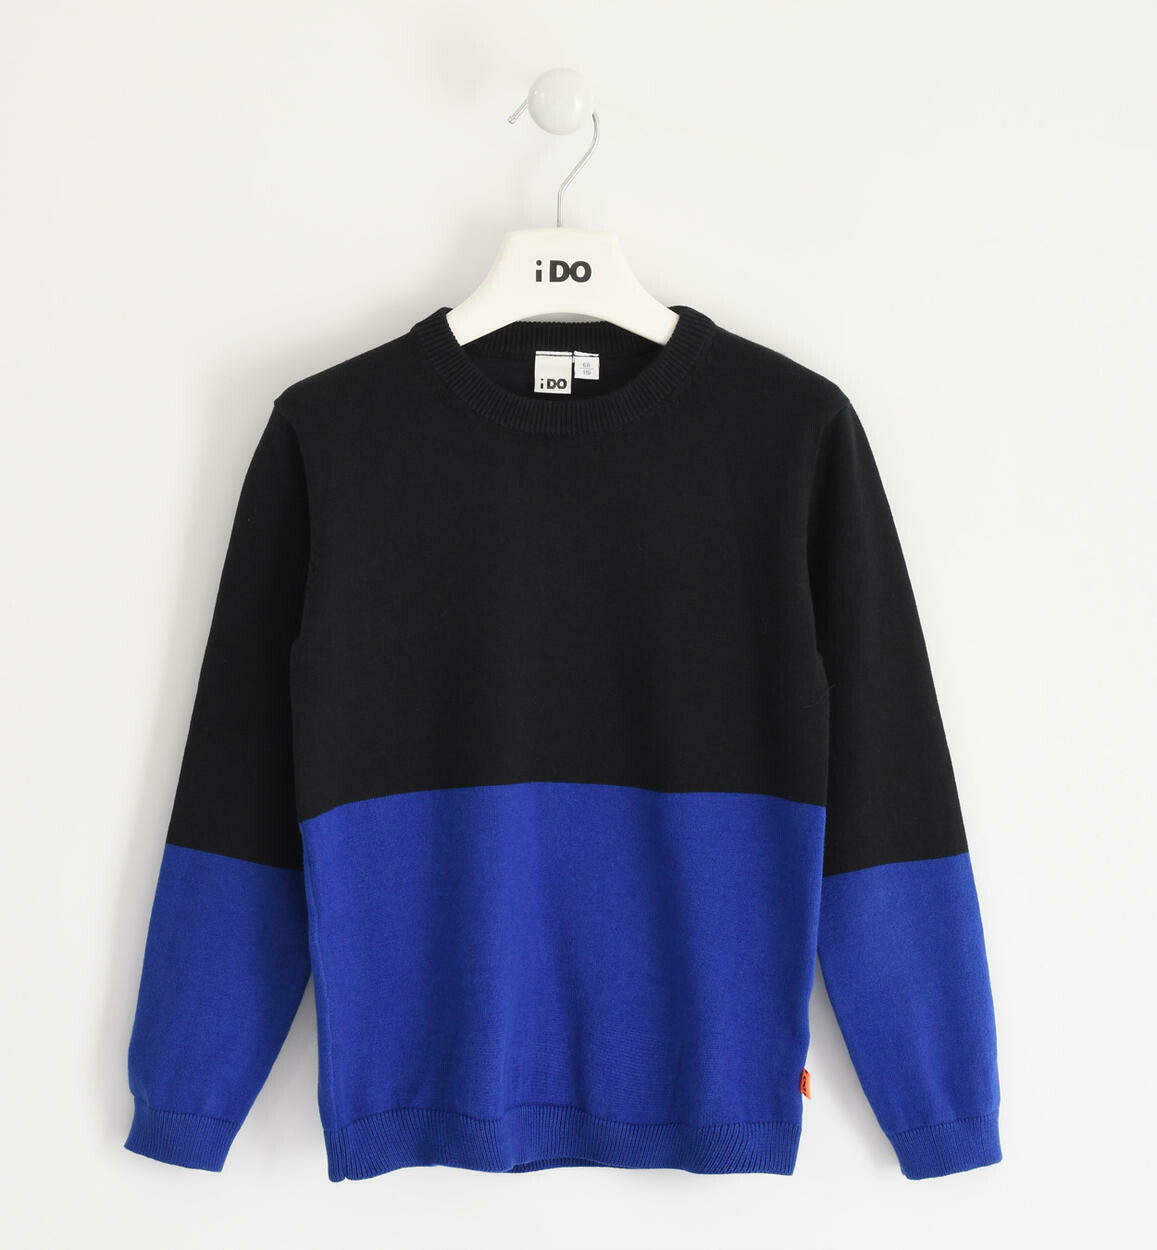 ido Teen Boys Two-Tone Crew Neck Sweater In Tricot